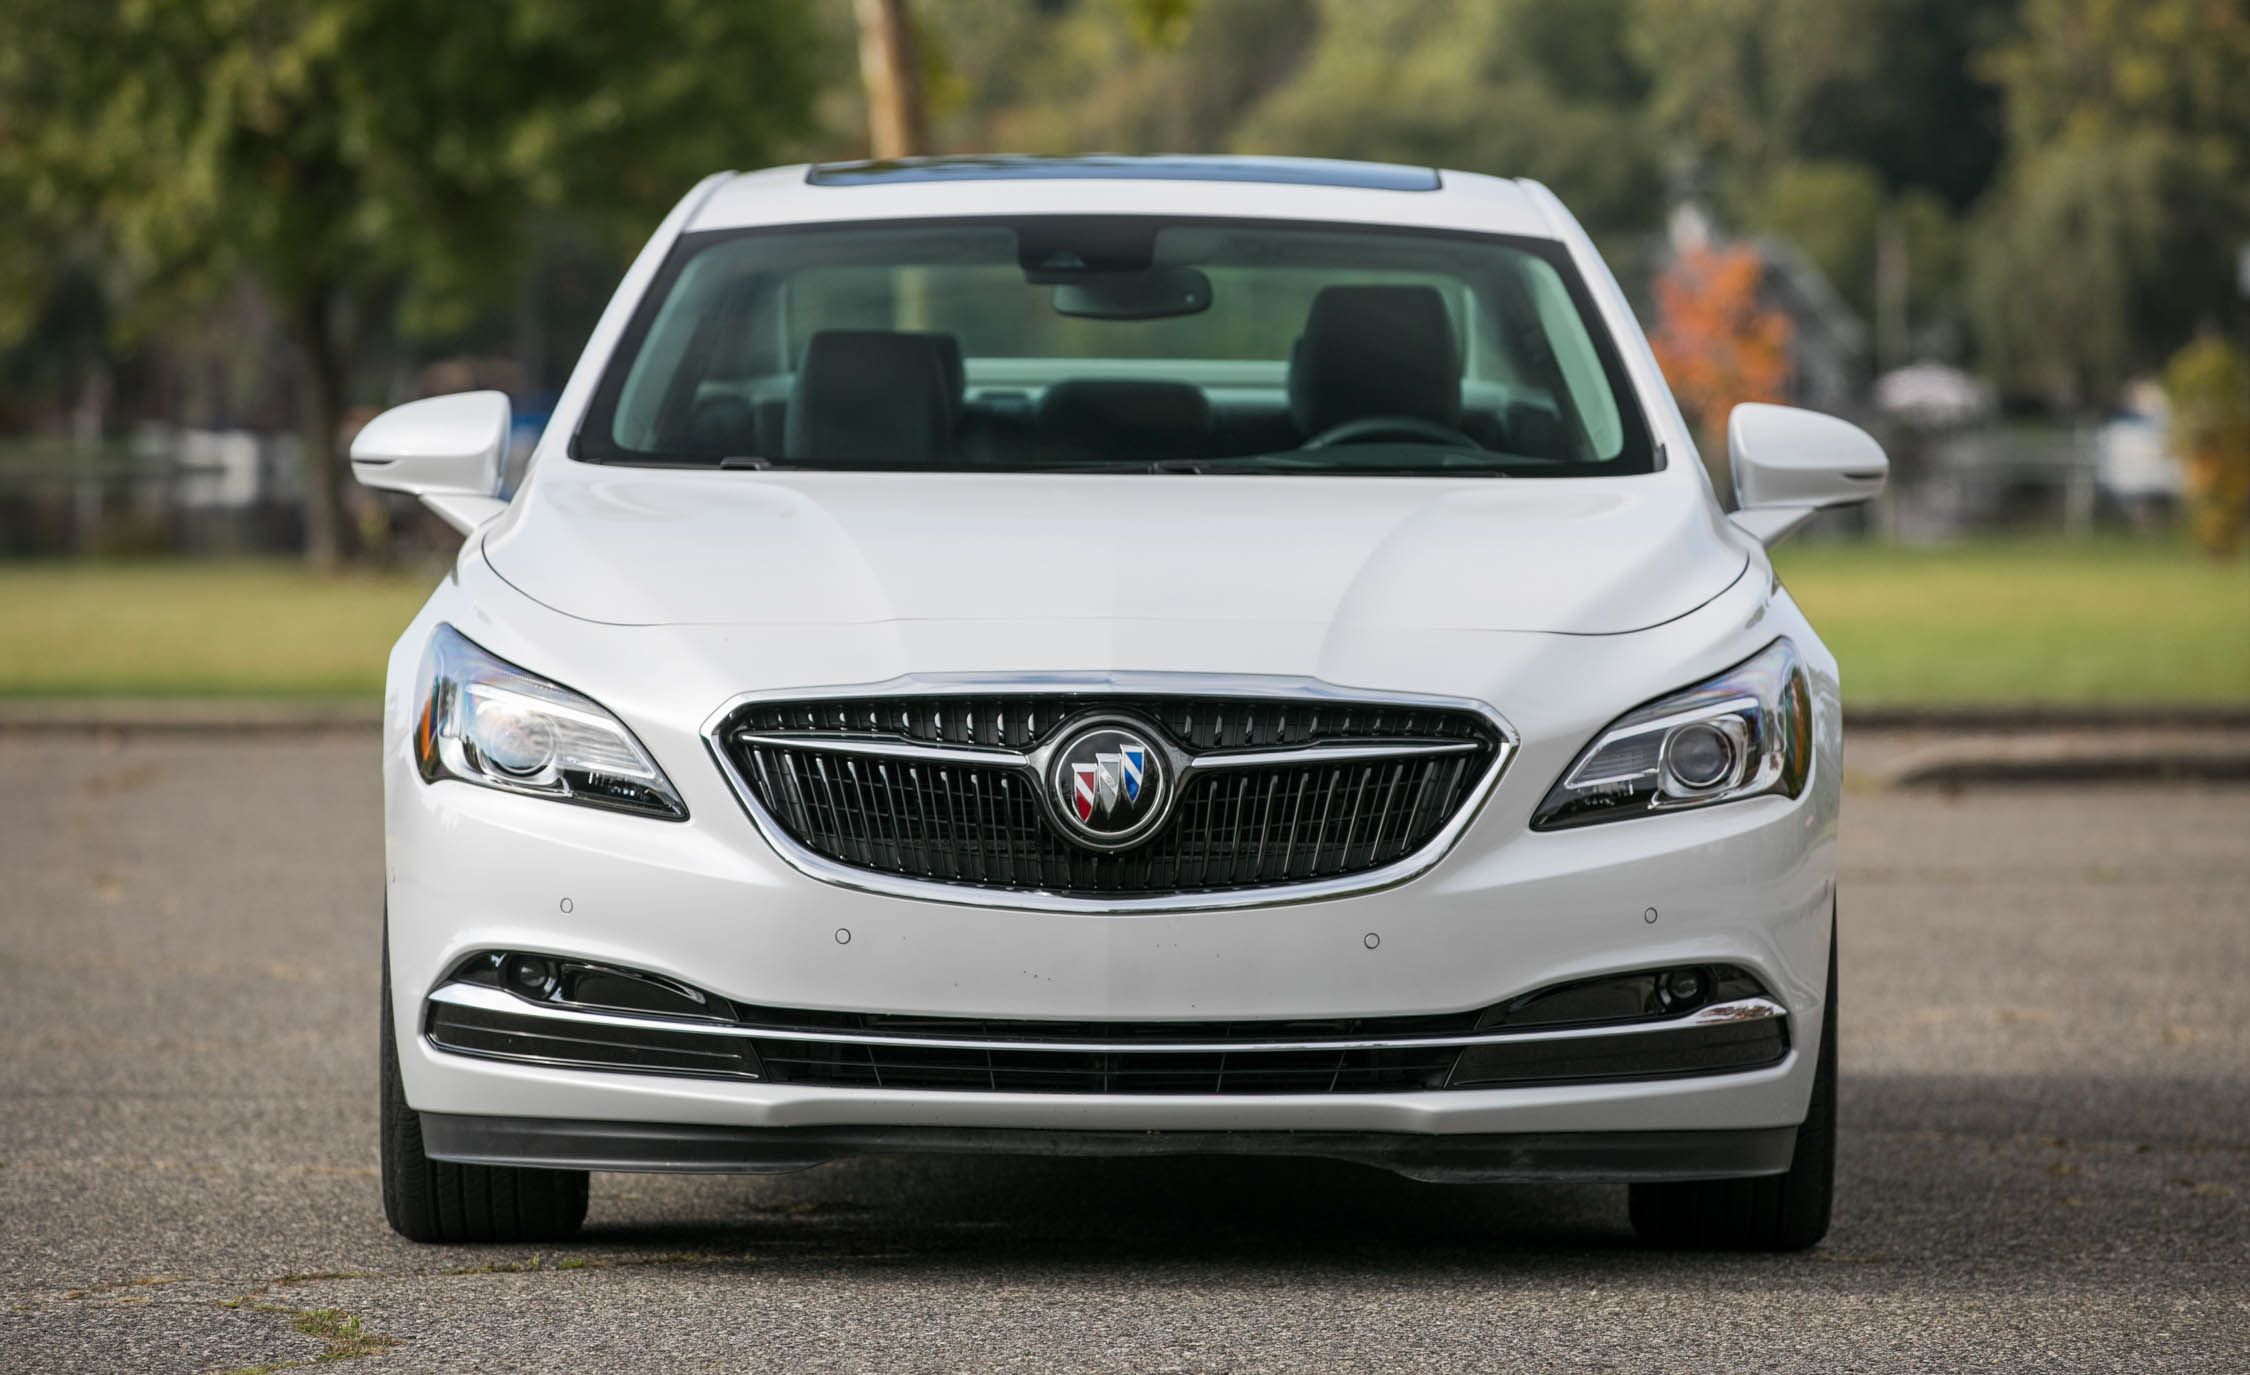 Buick LaCrosse: Services Specific to Canadian-Purchased Vehicles